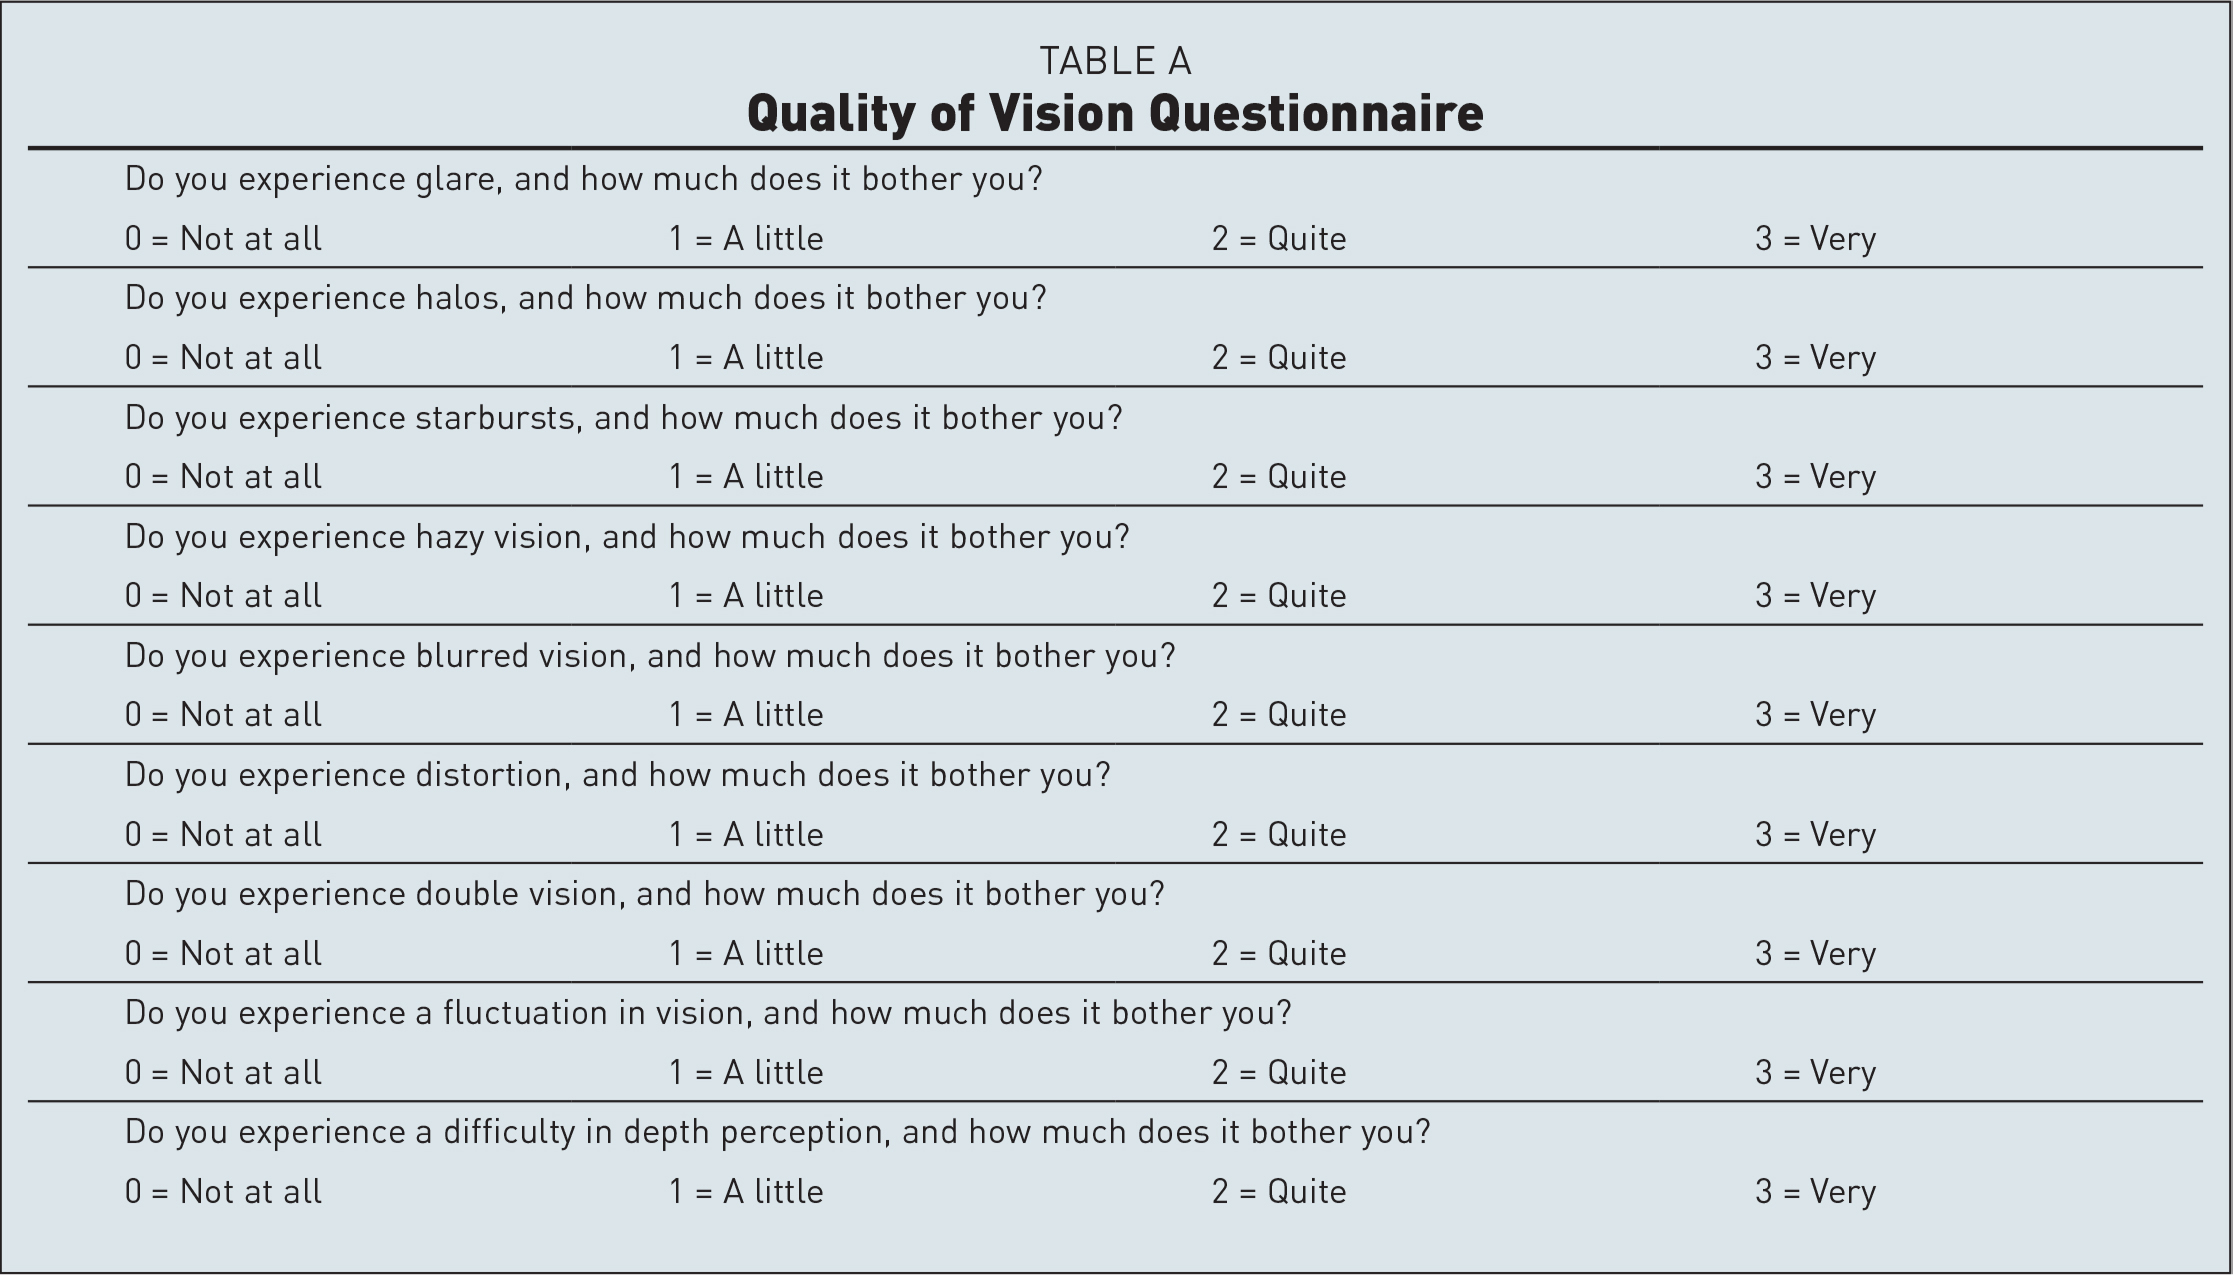 Quality of Vision Questionnaire